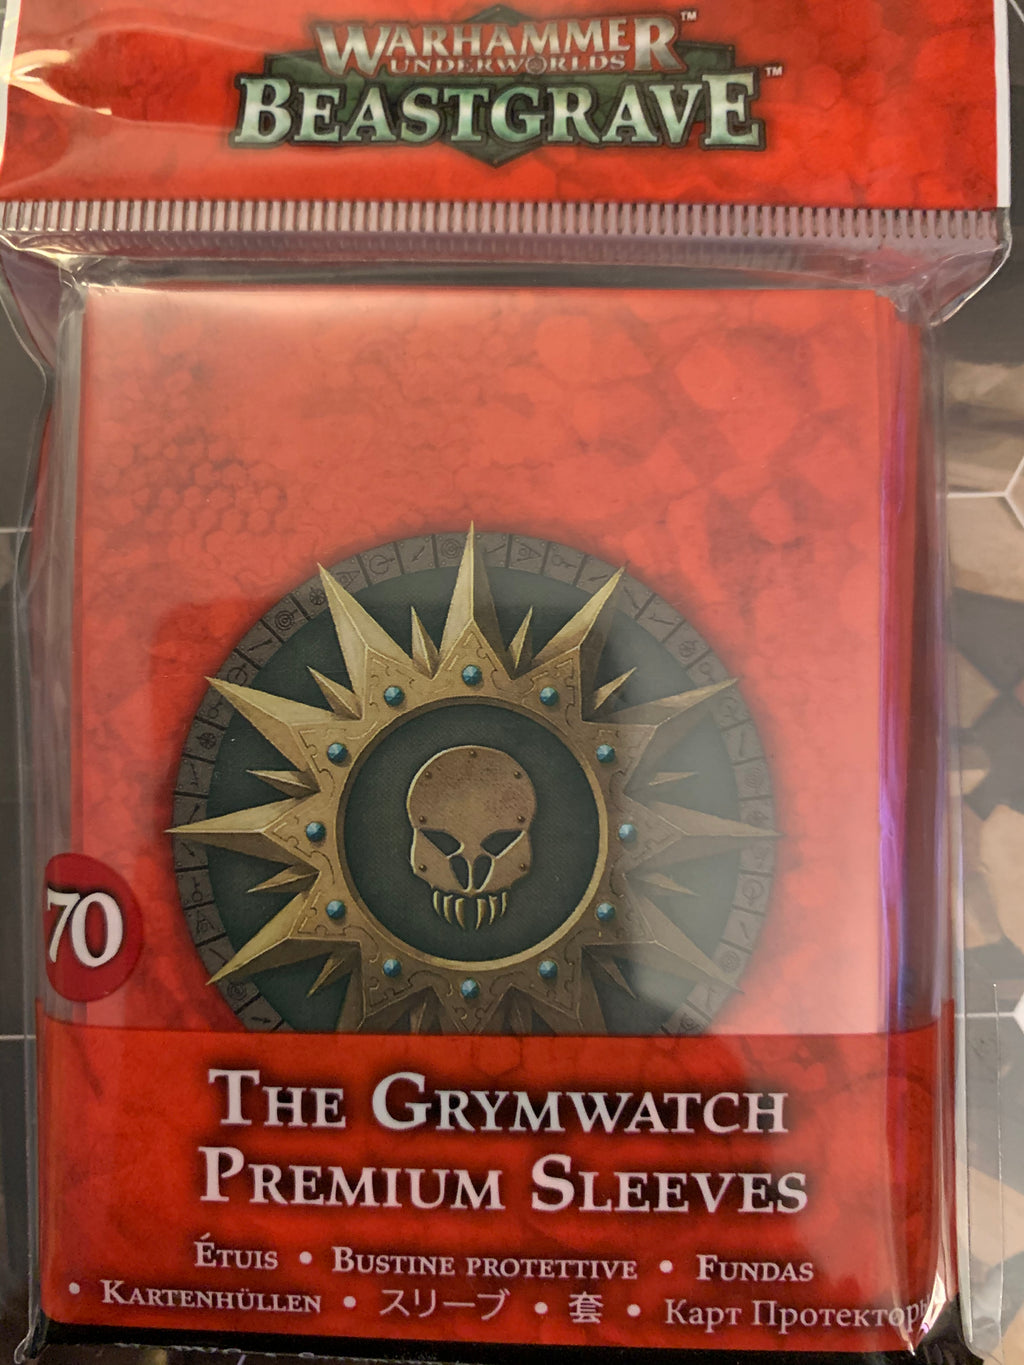 Warhammer Underworlds: The Grymwatch Sleeves